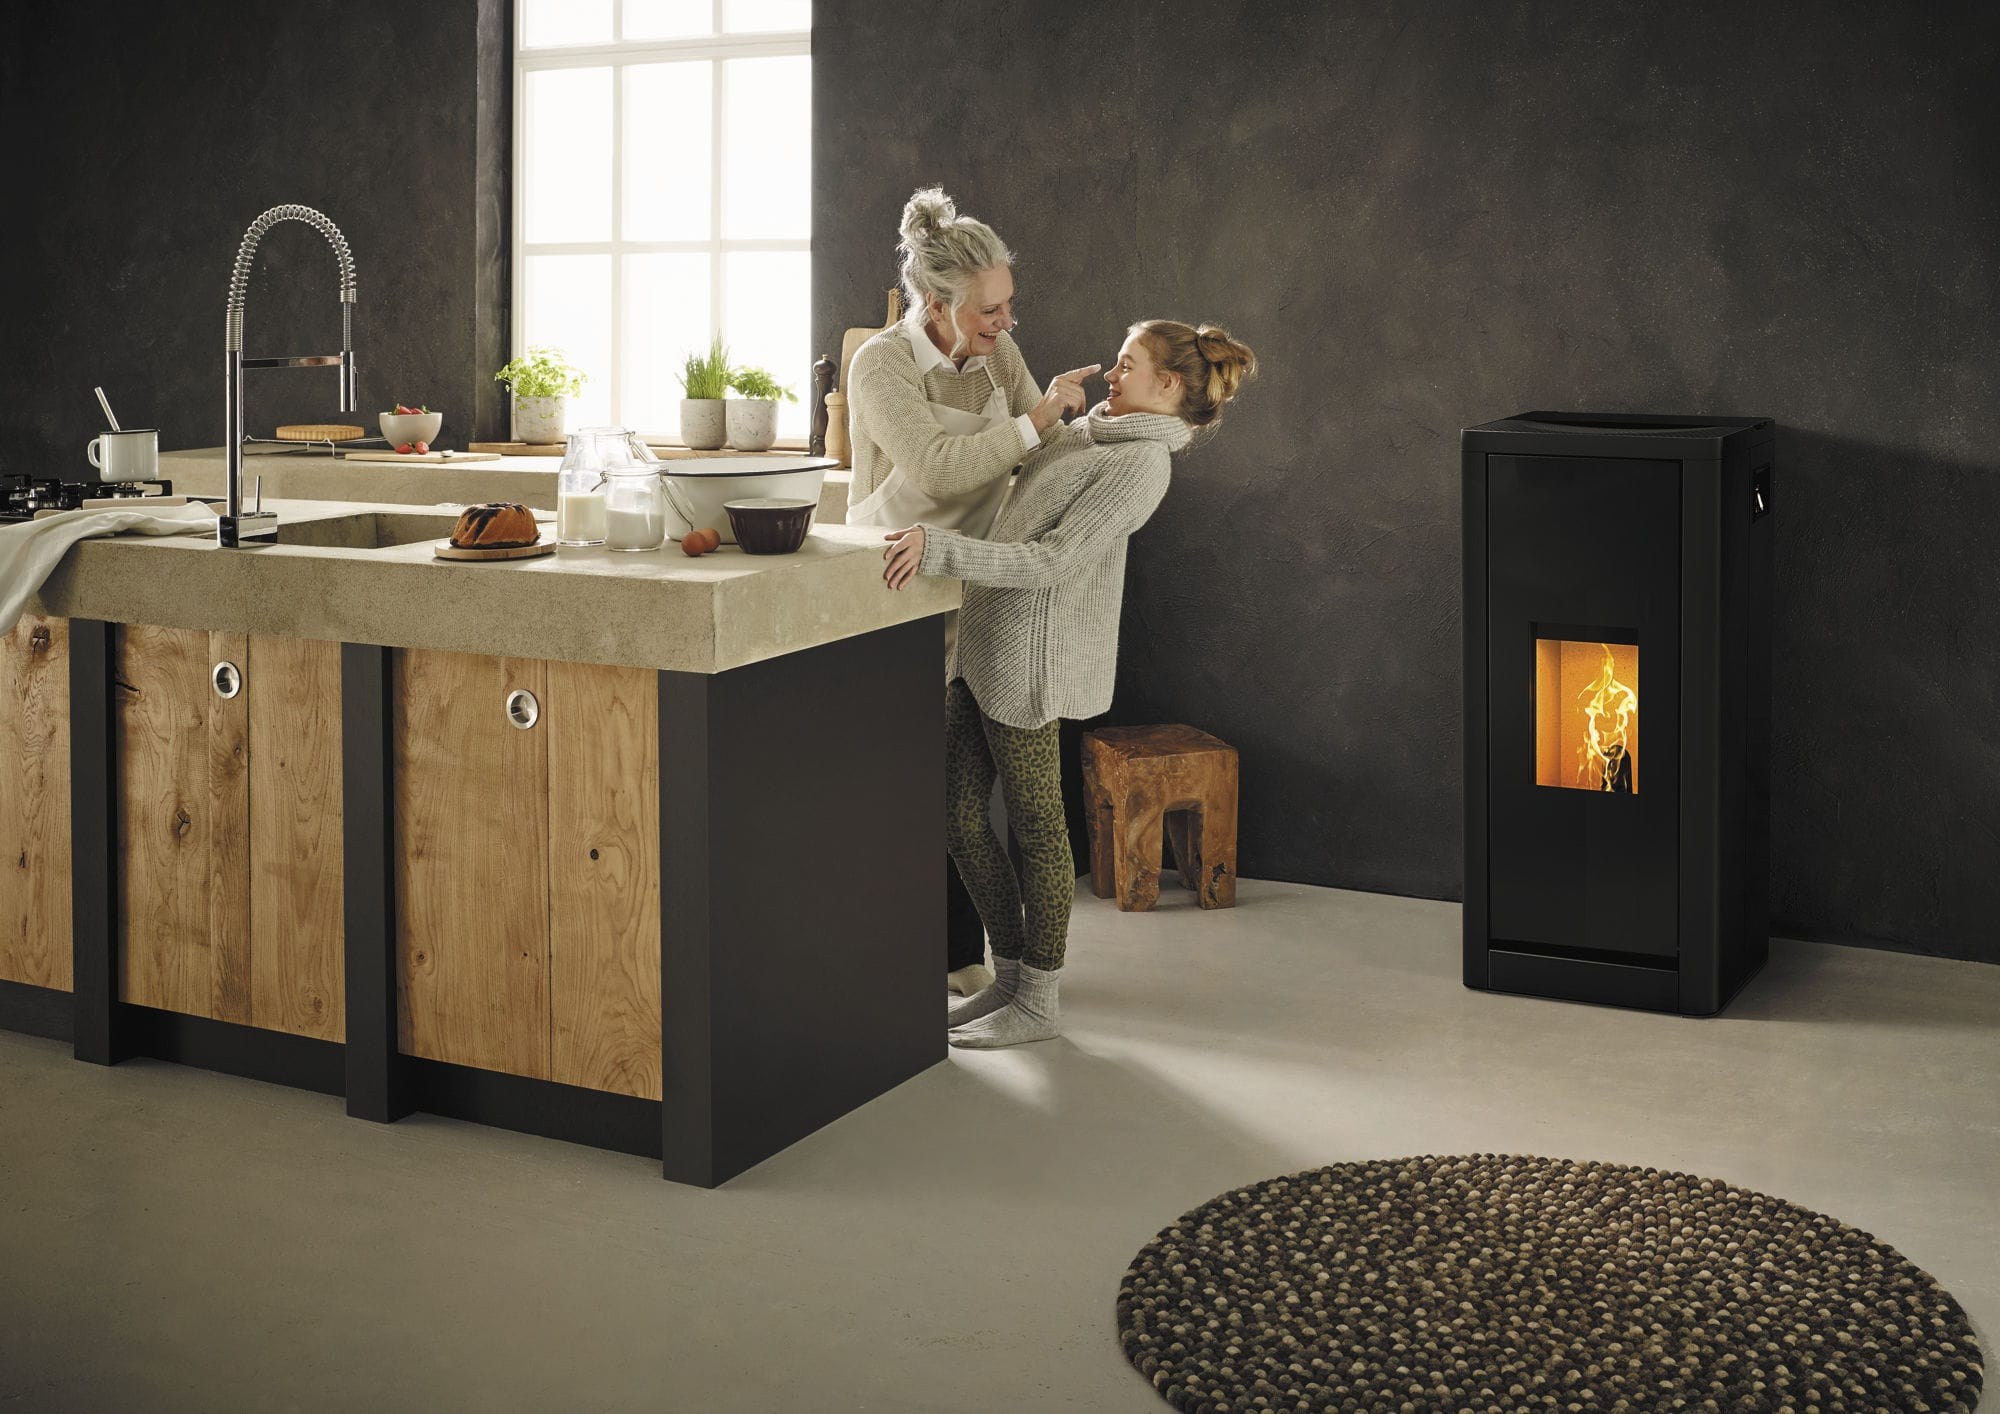 Poele A Pellet Rika Filo pellet heating stove / metal / contemporary / 0 - 5 kw